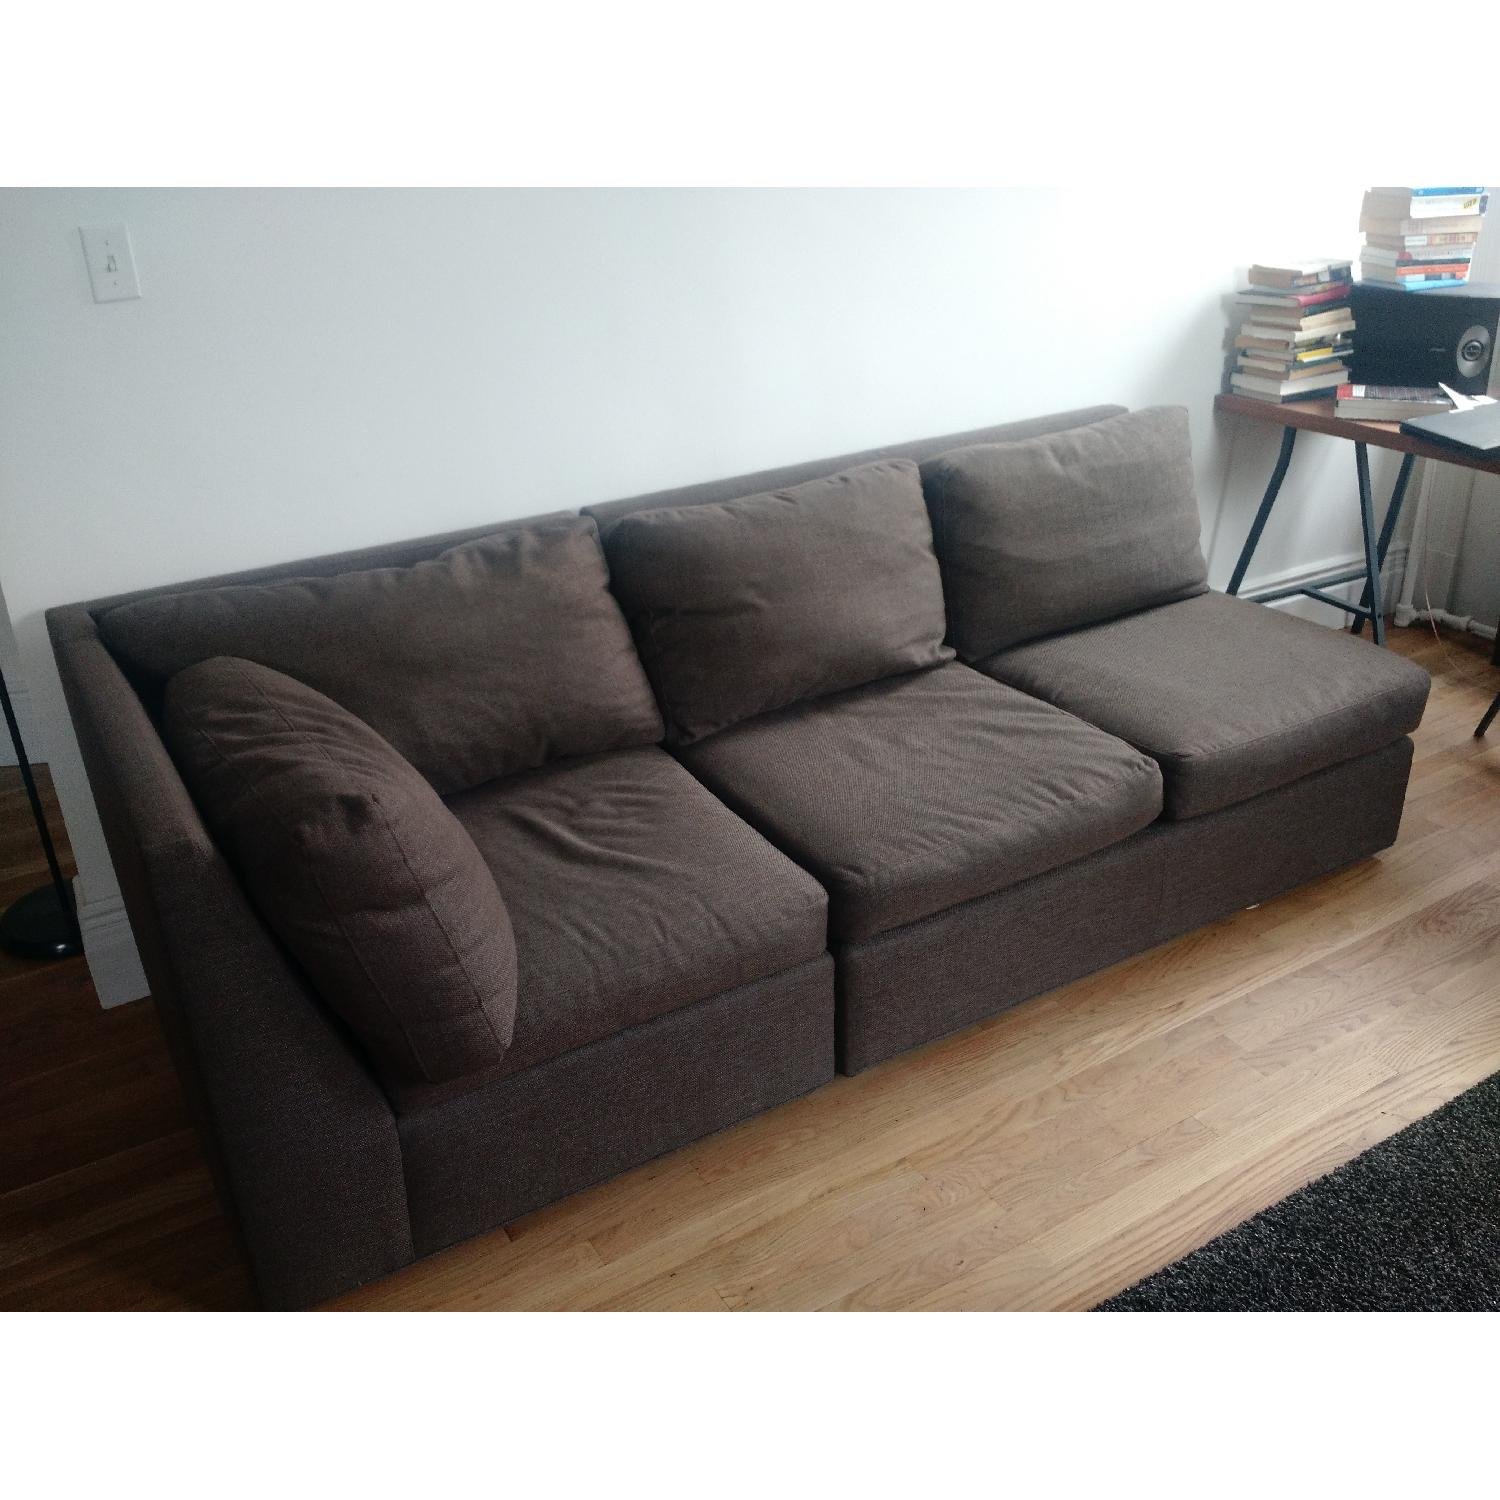 Crate & Barrel City Two-Piece Sectional - image-4